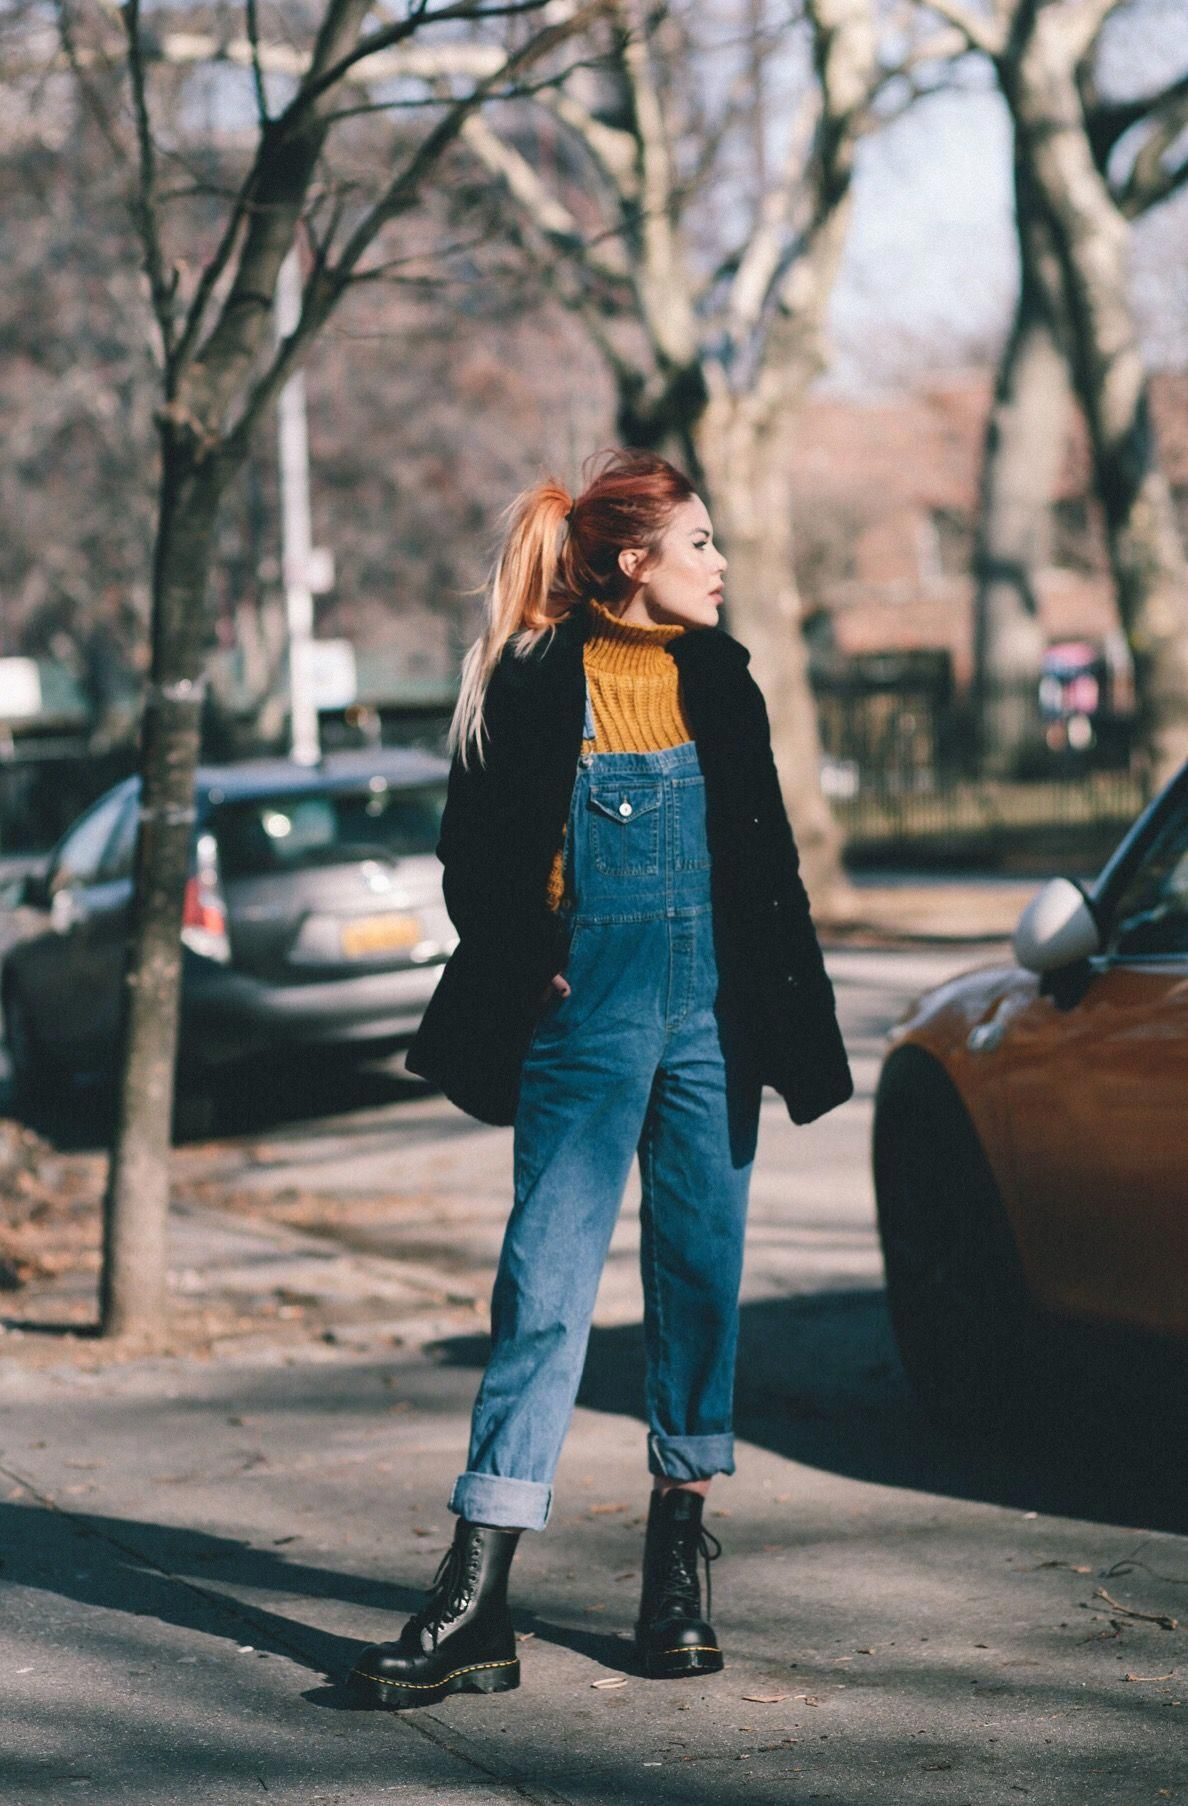 Sweater Vintage Overalls Vintage Shoes Dr Martens Coat Vintage By Lua P Drmartensboots Overalls Vintage Overalls Outfit Fashion